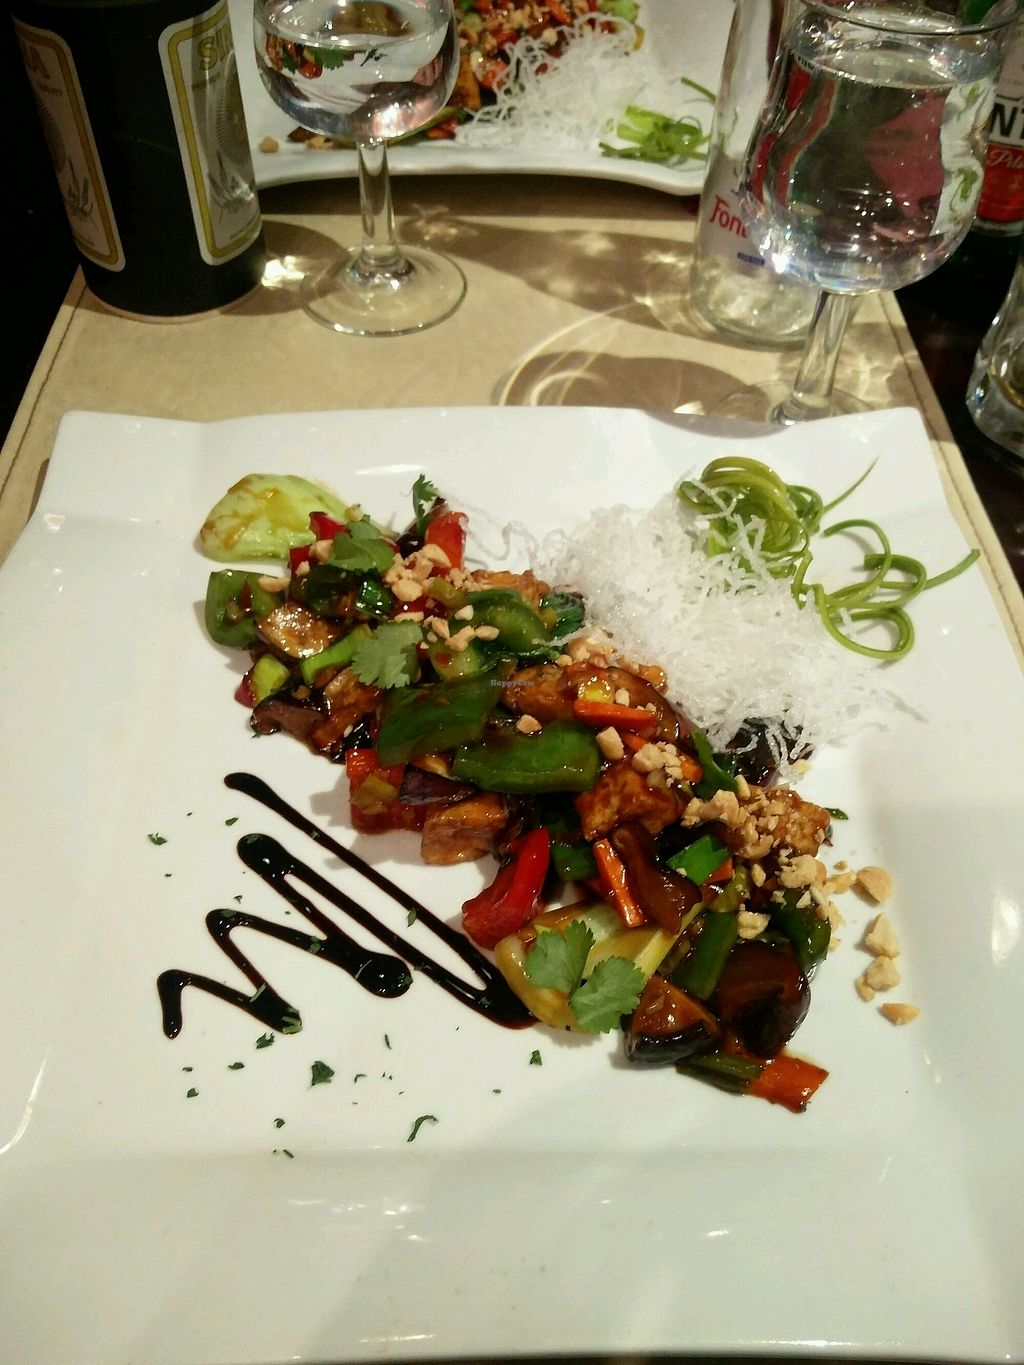 "Photo of Fusion  by <a href=""/members/profile/IsabellJardhammar"">IsabellJardhammar</a> <br/>stir-fried vegetables with tofu <br/> February 7, 2018  - <a href='/contact/abuse/image/46726/356096'>Report</a>"